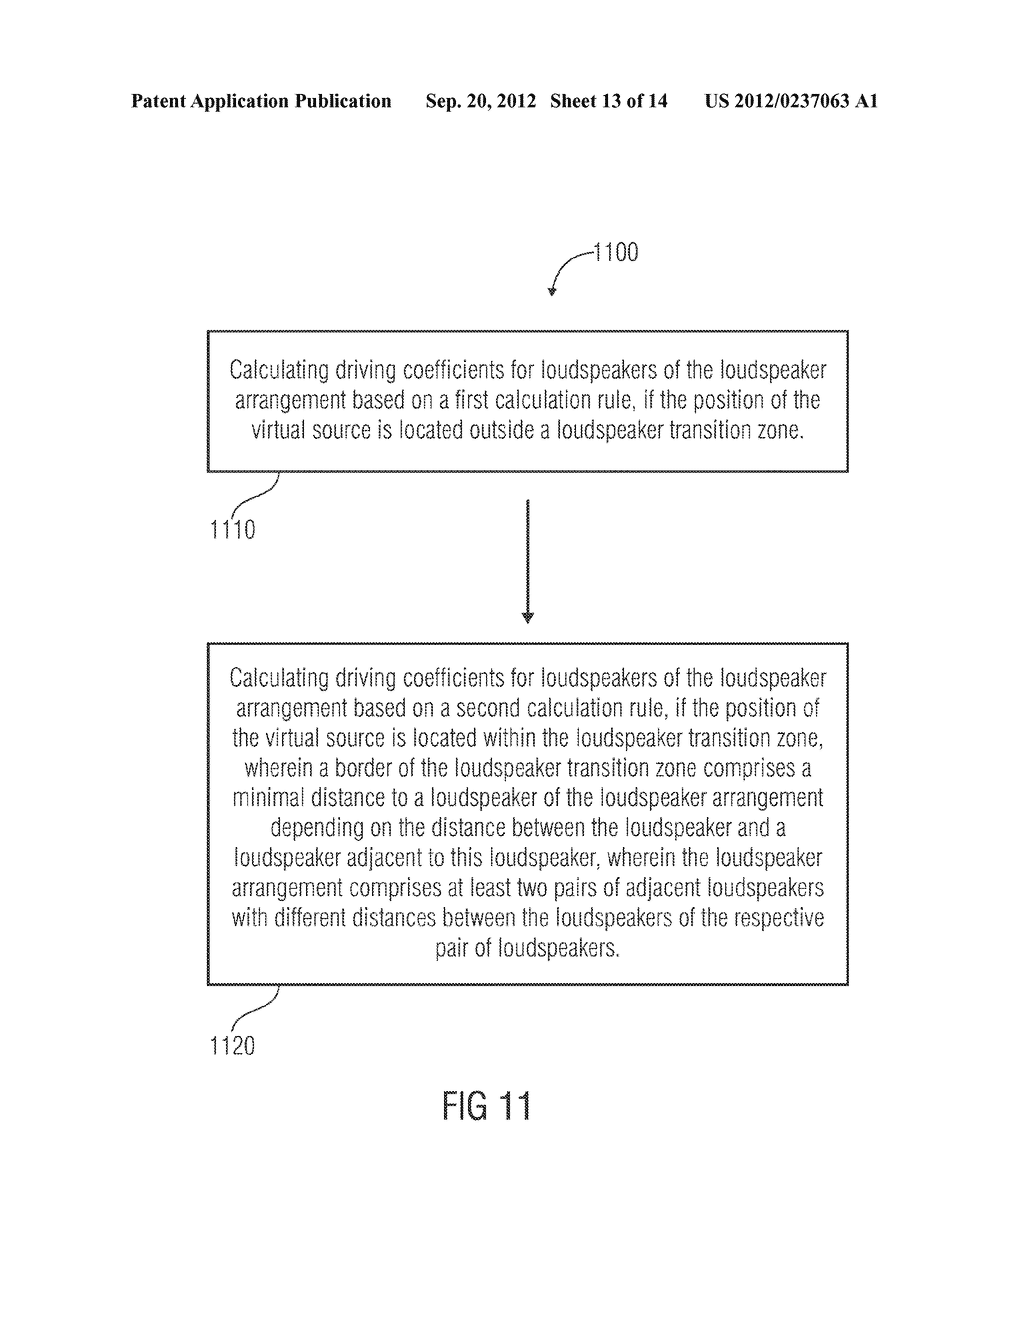 APPARATUS AND METHOD FOR CALCULATING DRIVING COEFFICIENTS FOR LOUDSPEAKERS     OF A LOUDSPEAKER ARRANGEMENT AND APPARATUS AND METHOD FOR PROVIDING DRIVE     SIGNALS FOR LOUDSPEAKERS OF A LOUDSPEAKER ARRANGEMENT BASED ON AN AUDIO     SIGNAL ASSOCIATED WITH A VIRTUAL SOURCE - diagram, schematic, and image 14